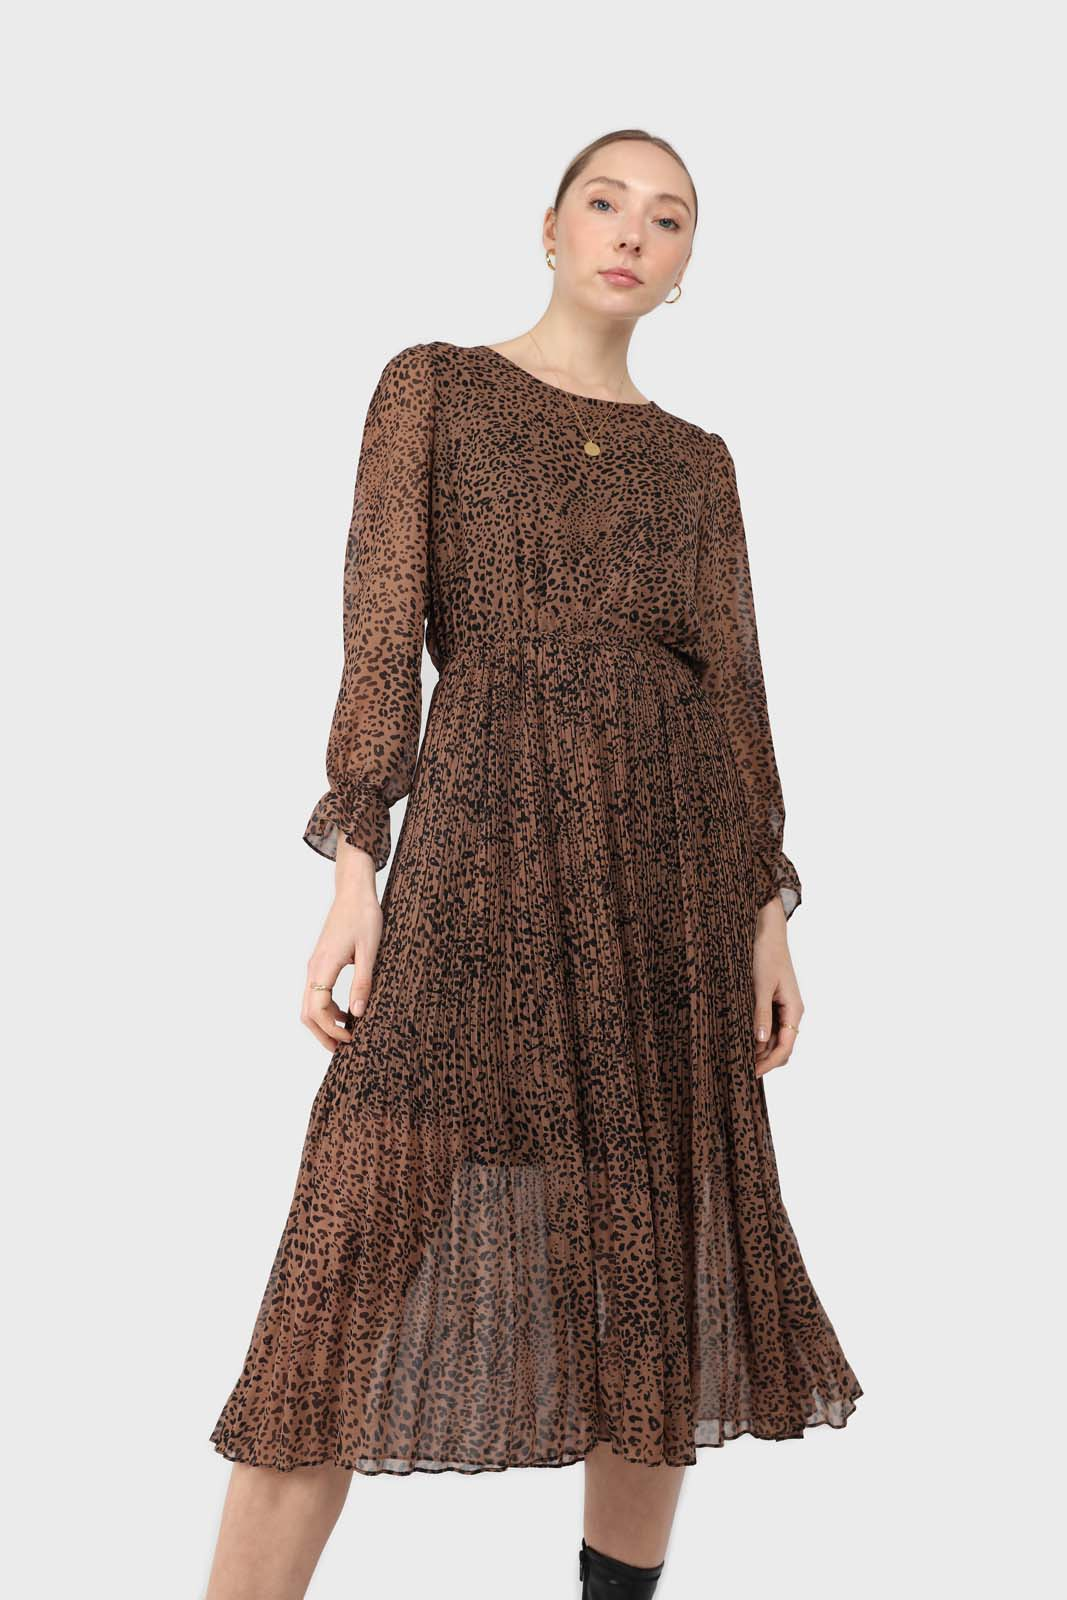 Camel animal print silky micro pleat long sleeved maxi dress2